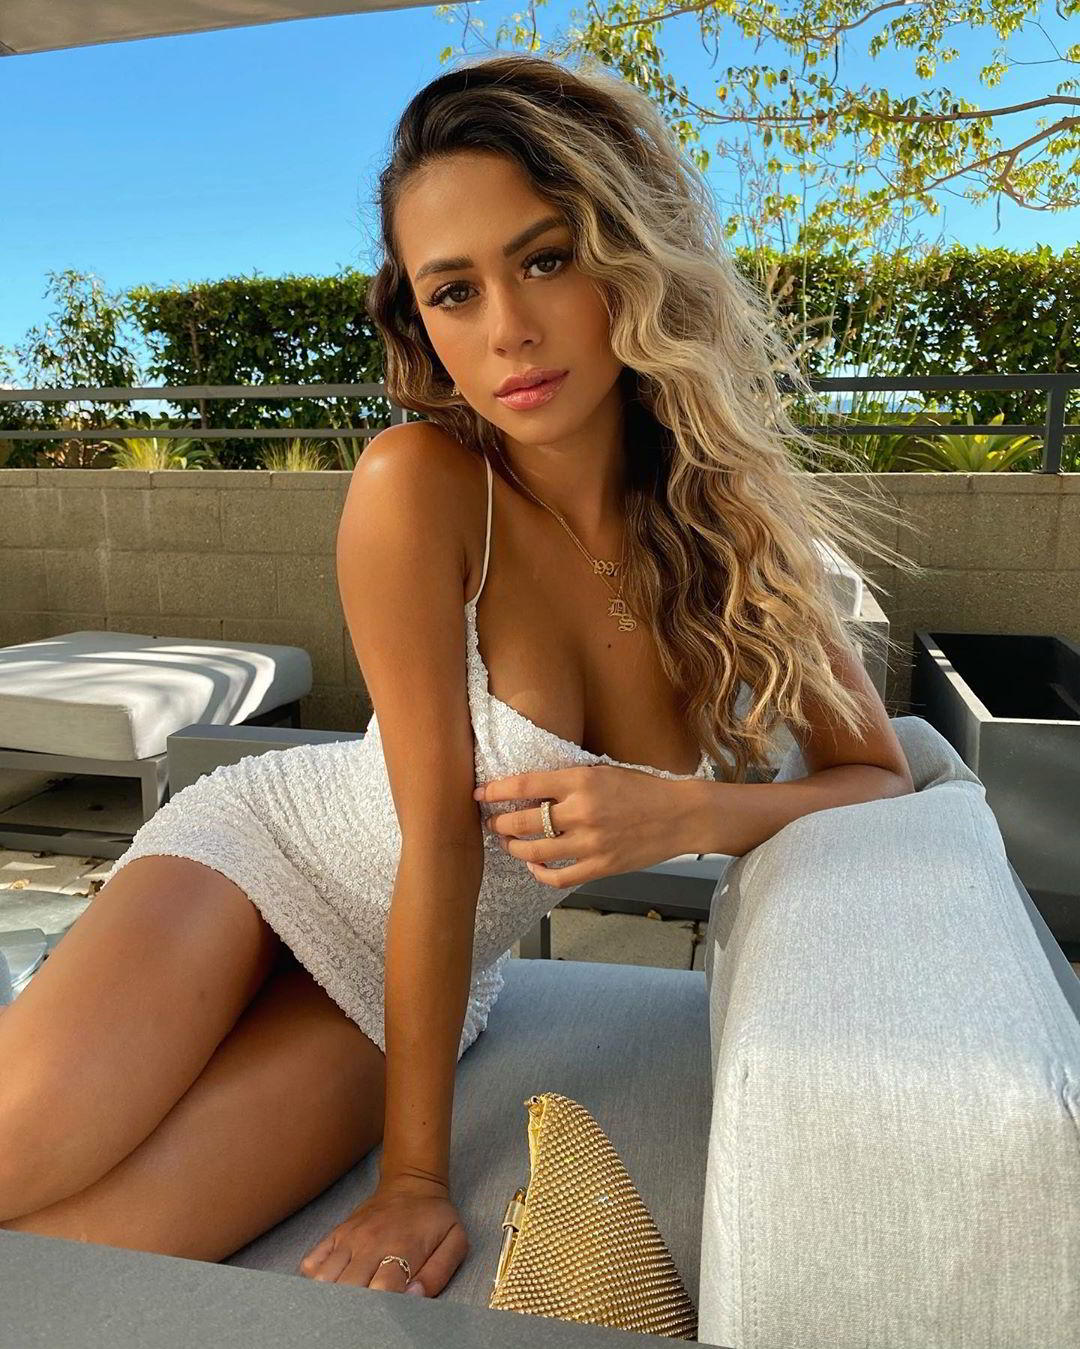 Desiree schlotz Caramel Boobs is addicted to its sweet and spicy taste